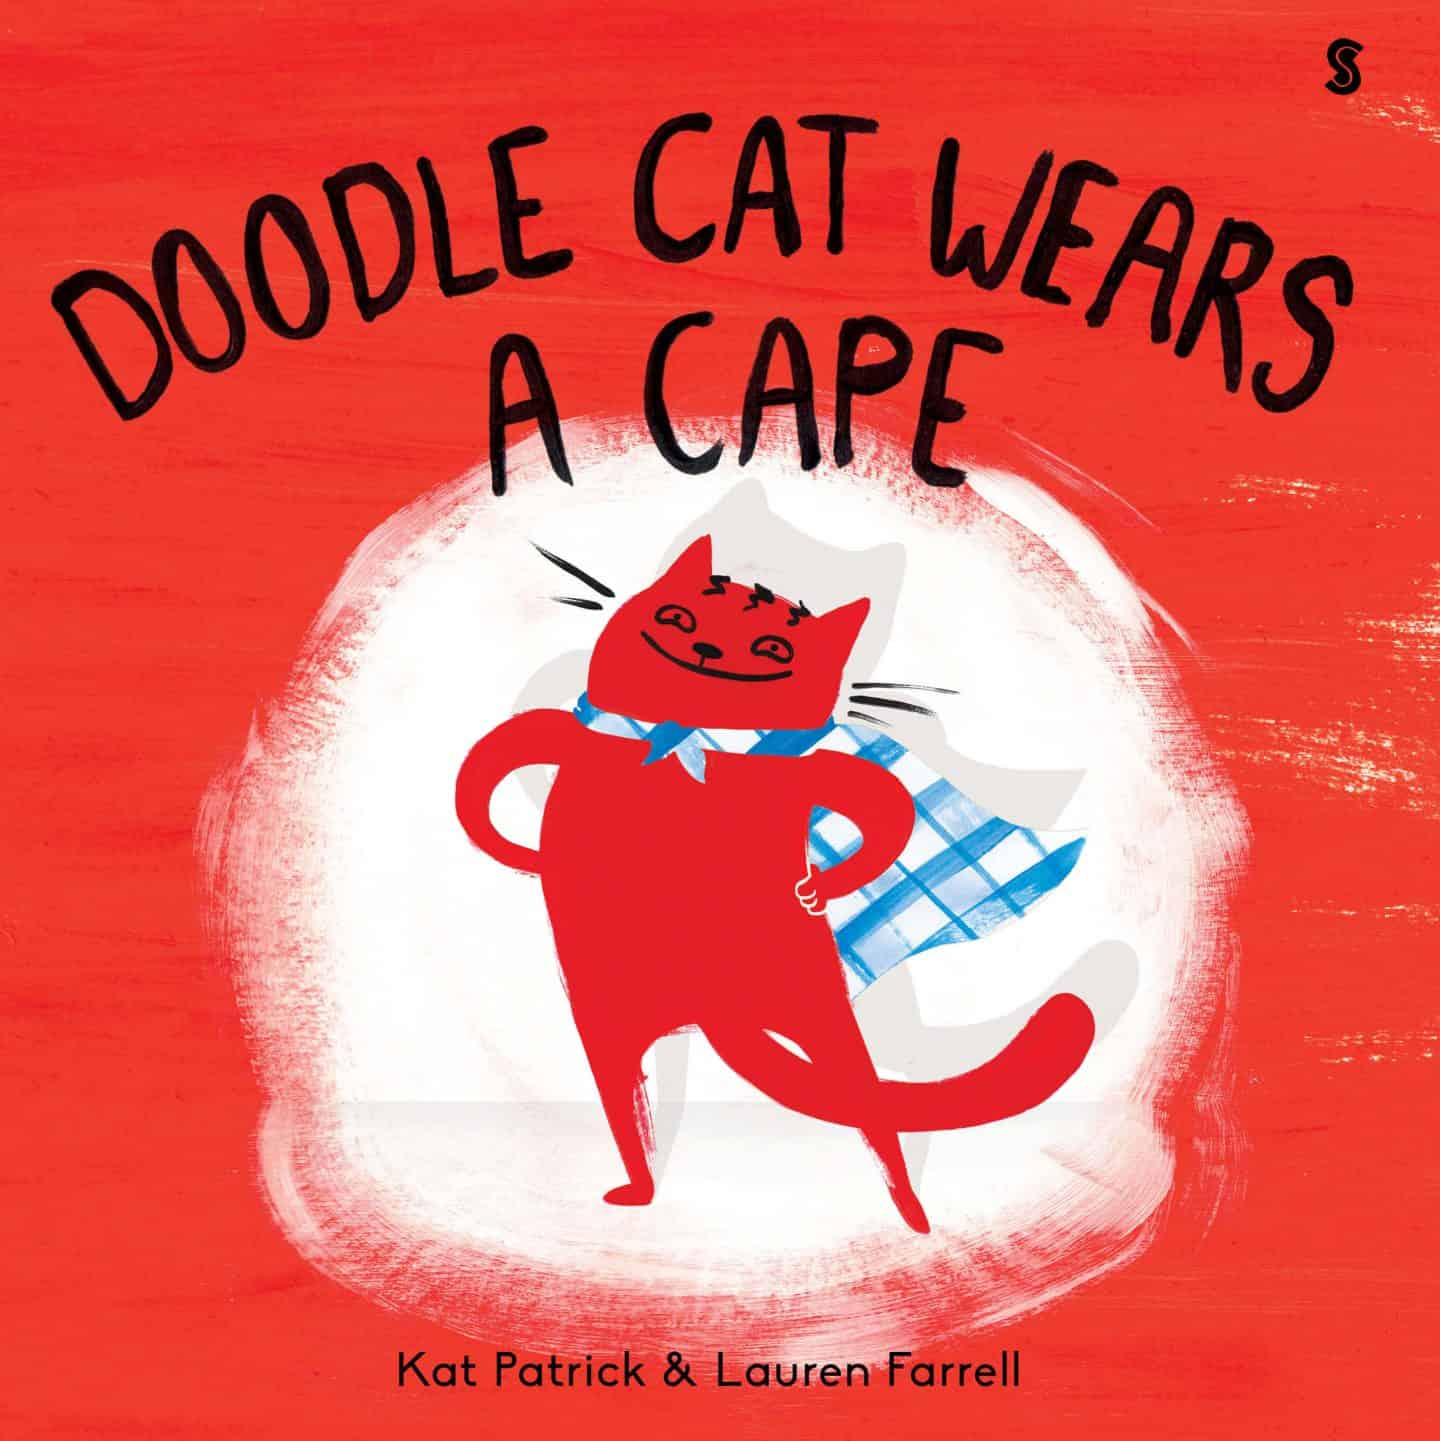 Doodle Cat Wears A Cape - book cover